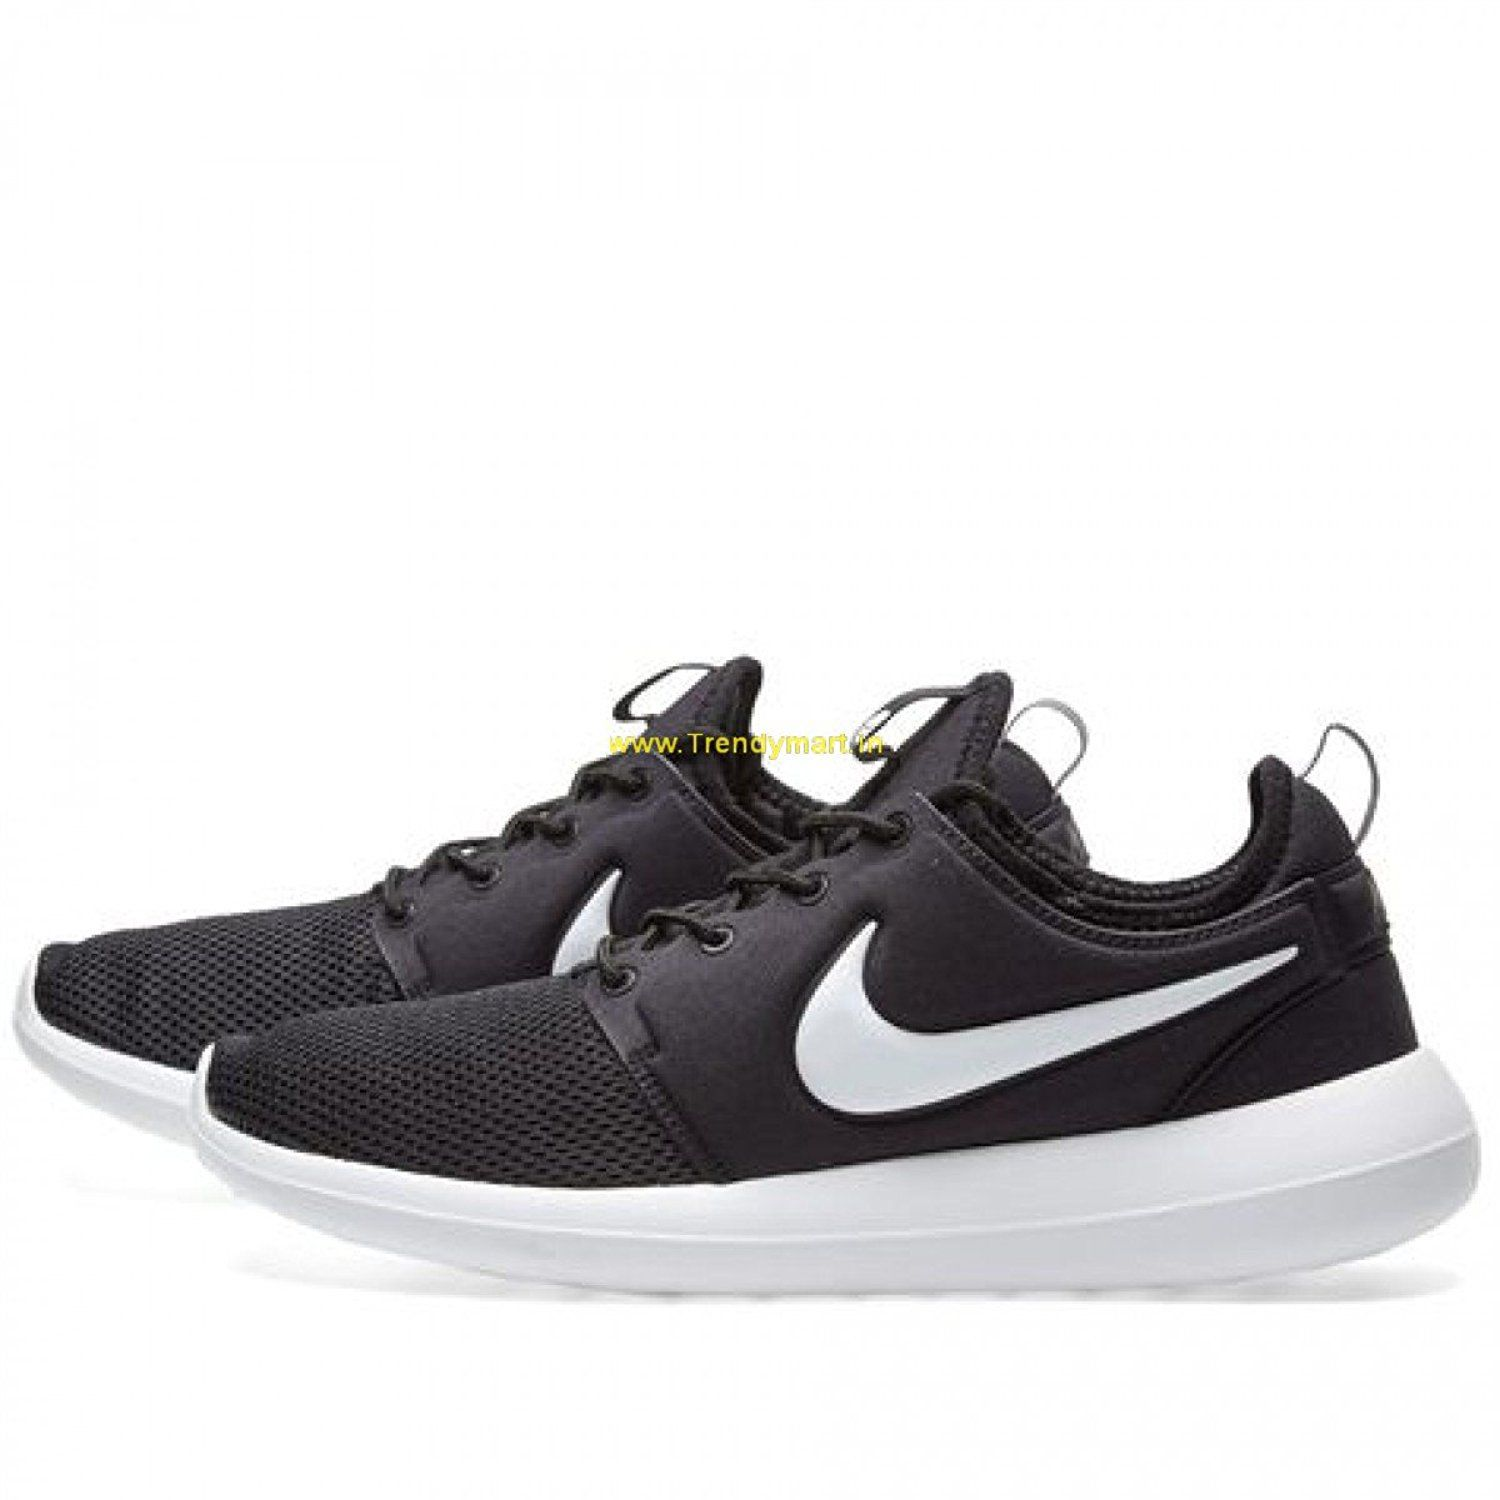 on sale 985e2 799dd Nike roshe 2 Black Running Shoes - Buy Nike roshe 2 Black ...